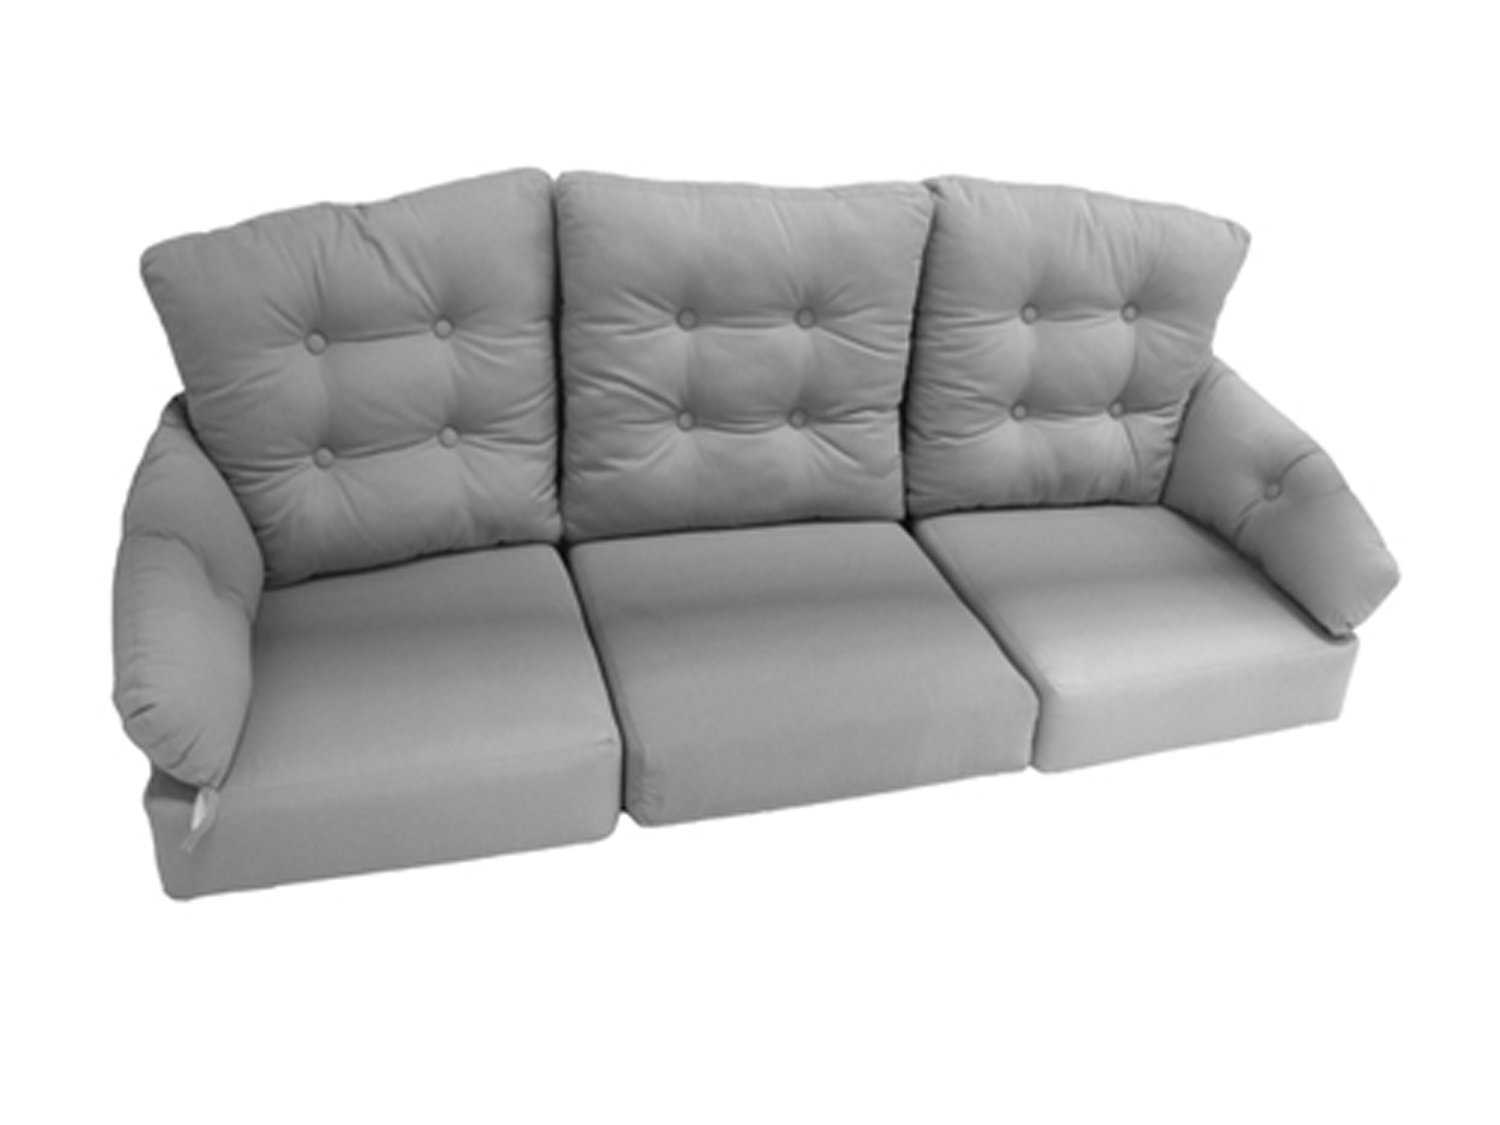 Meadowcraft Grayson Replacement Sofa Seat & Back Patio